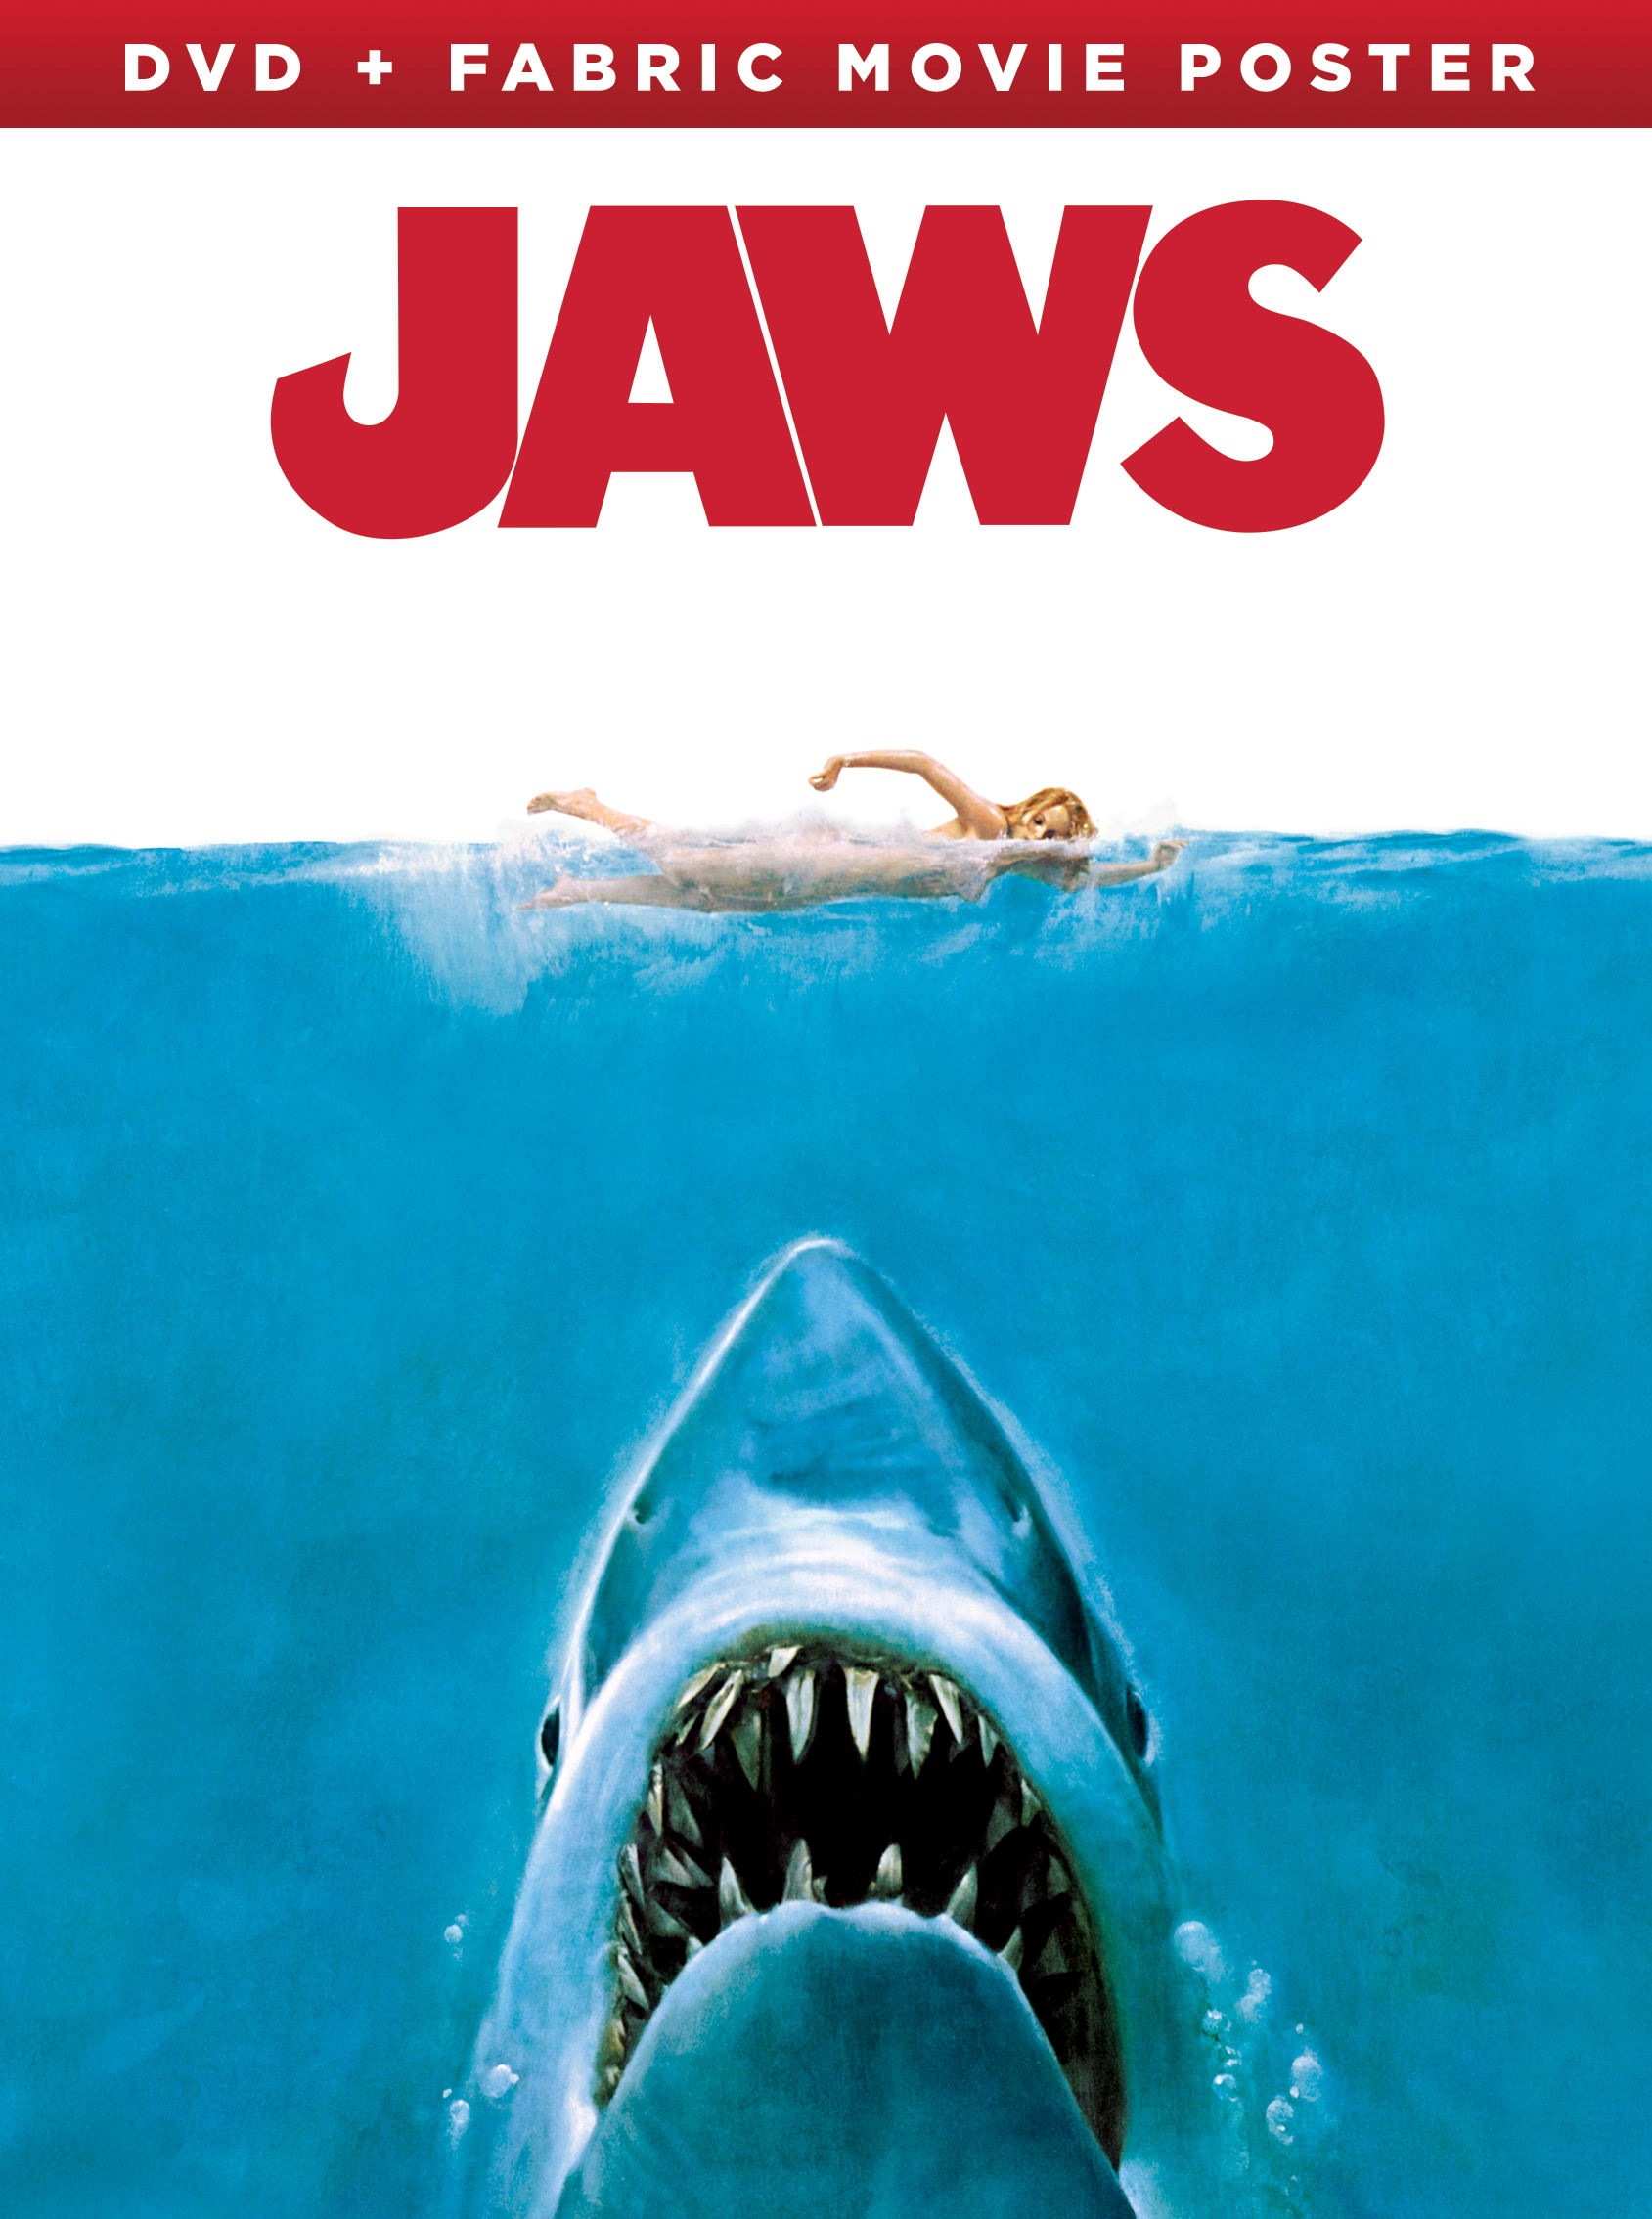 Jaws (Limited Edition Fabric Movie Poster) [DVD]